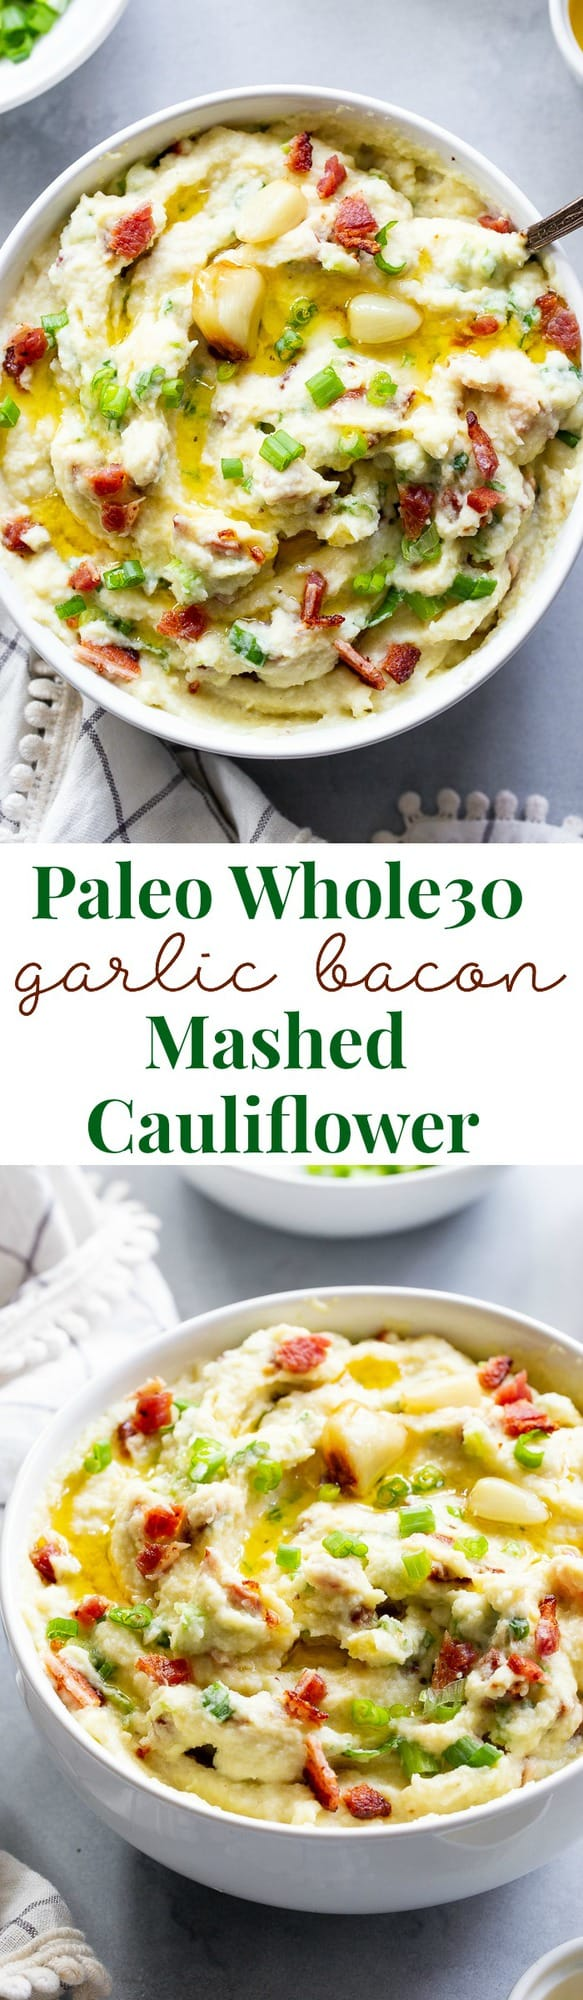 This creamy mashed cauliflower is packed with goodies like roasted garlic, crispy bacon andscallions. It tastes just like loaded mashed potatoes, but without the carbs! Whole30 compliant, paleo, keto, and dairy-free.